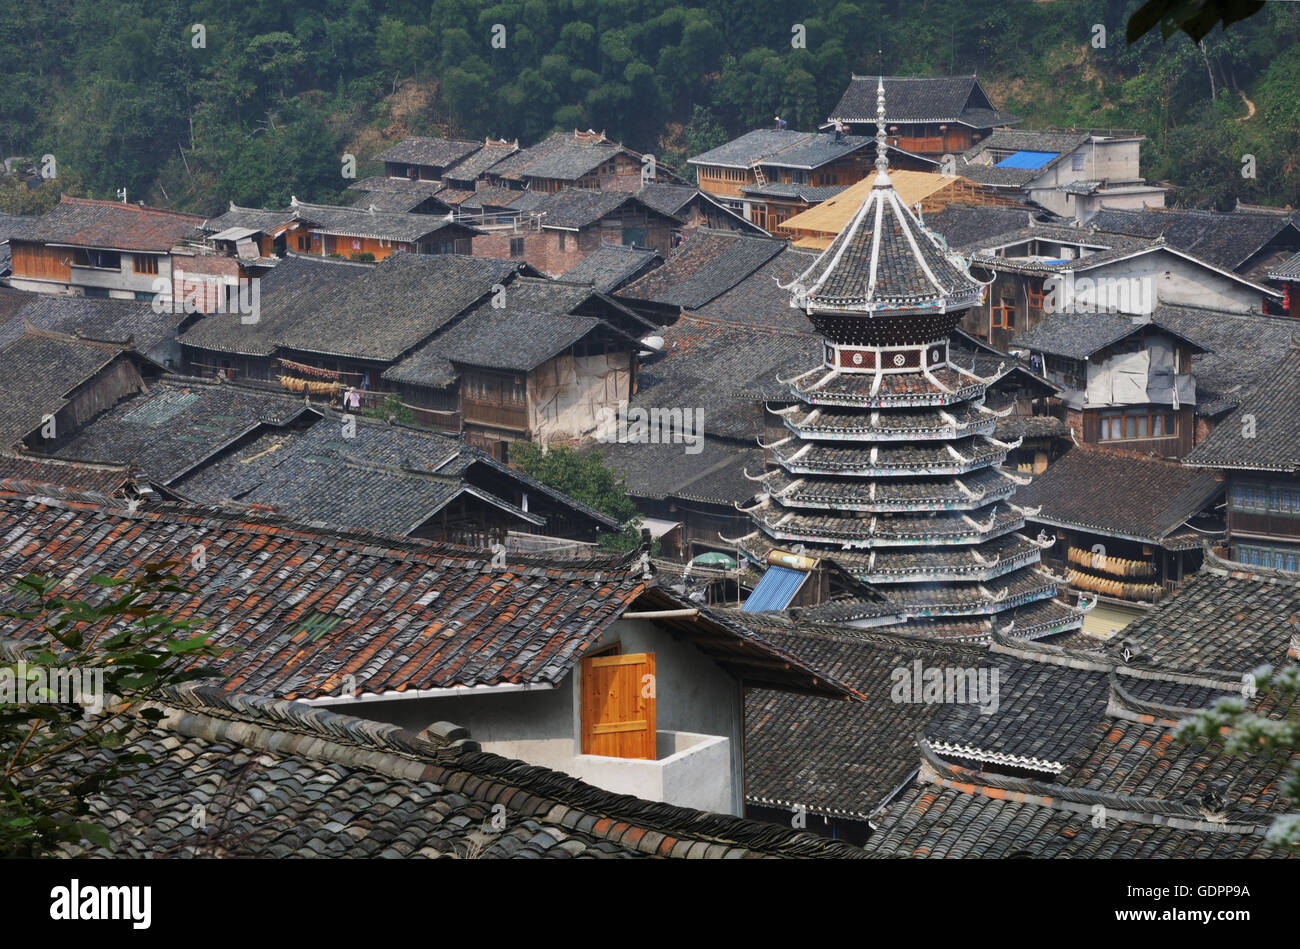 Drum Tower, Zhaoxing, Guizhou, China Stock Photo